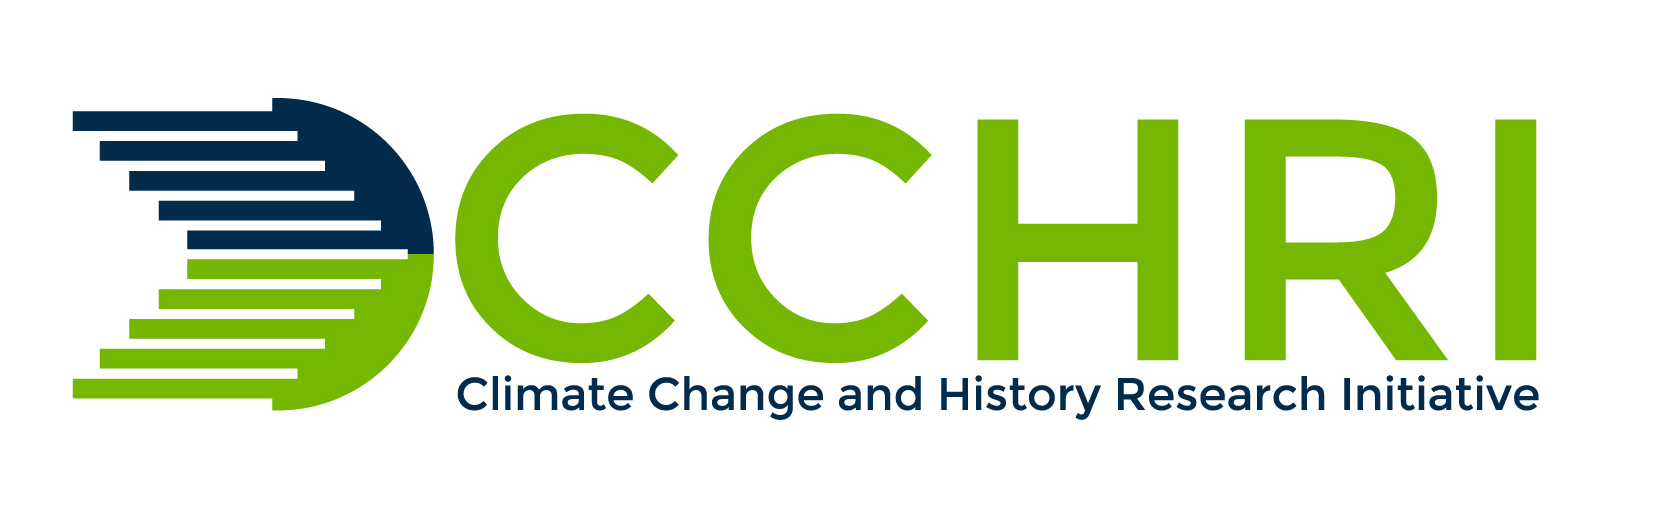 Climate Change and History Research Initiative (CCHRI) logo